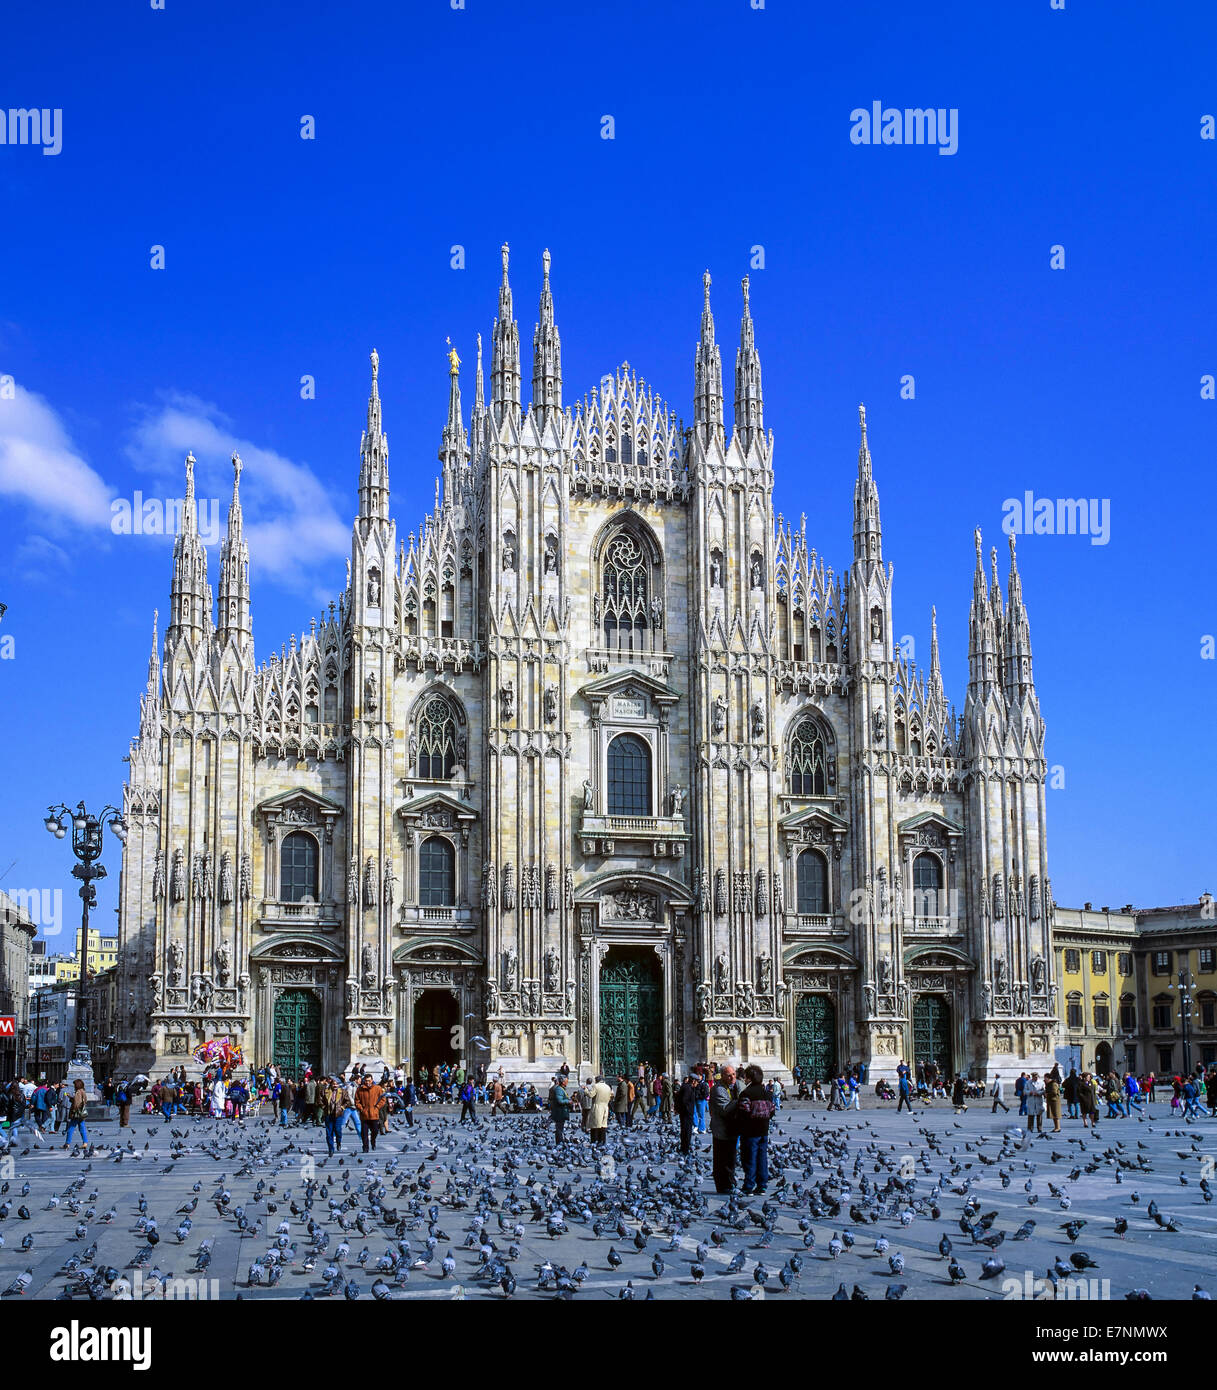 Duomo cathedral and Piazza square Milan Lombardy Italy - Stock Image